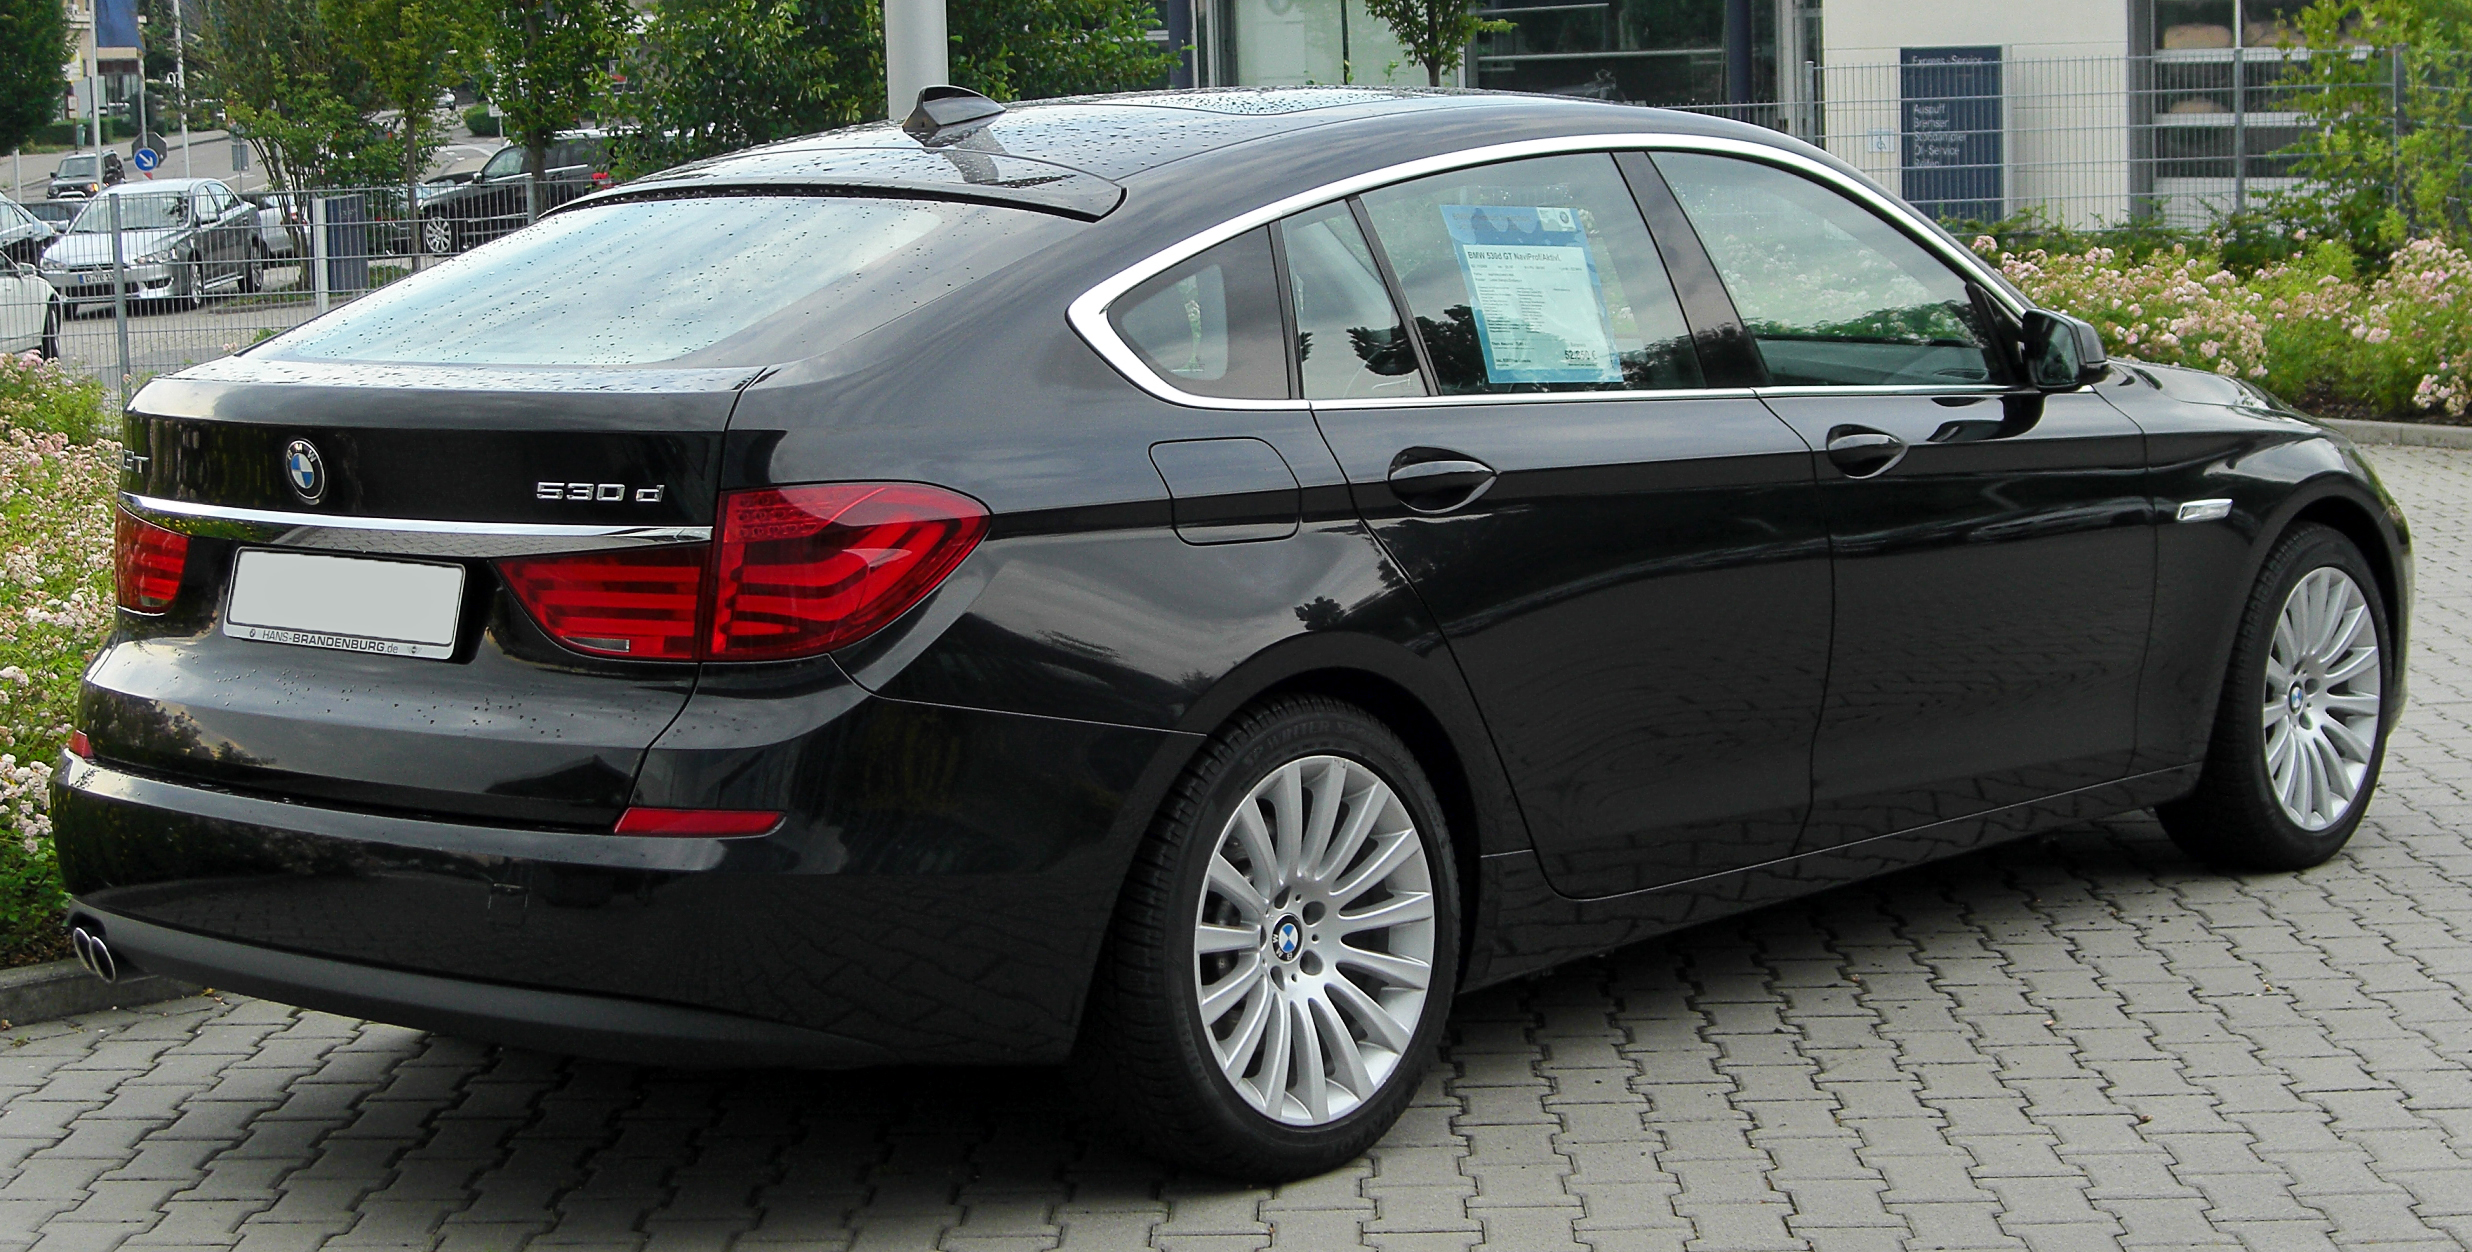 File Bmw 530d Gt F07 Rear 20100723 Jpg Wikimedia Commons